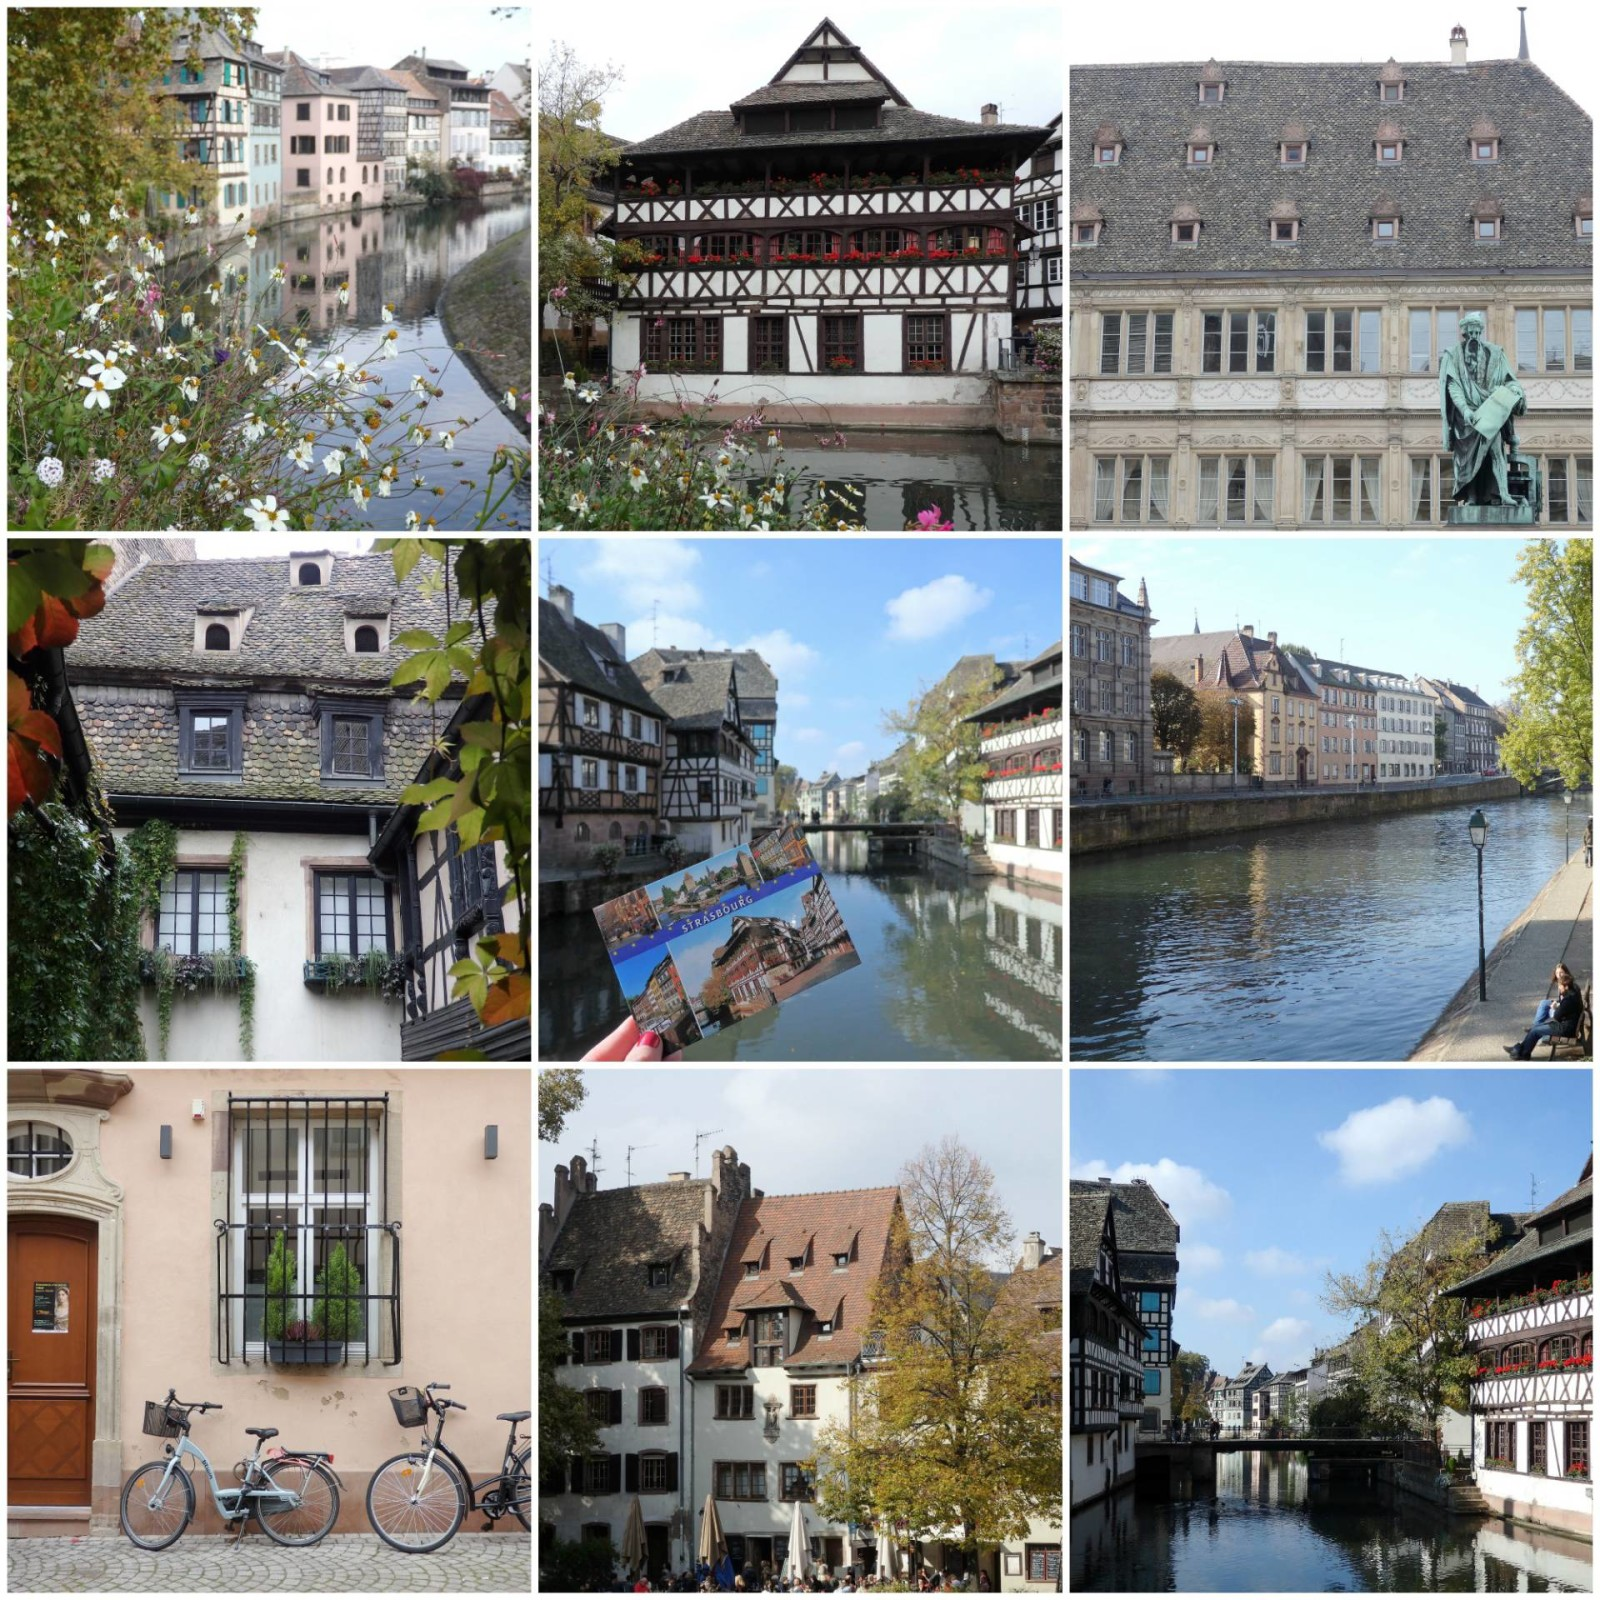 Where-Did-the-Wind-Blow-Me-and-a-few-other-reflections-My-2015-Review-Strasbourg